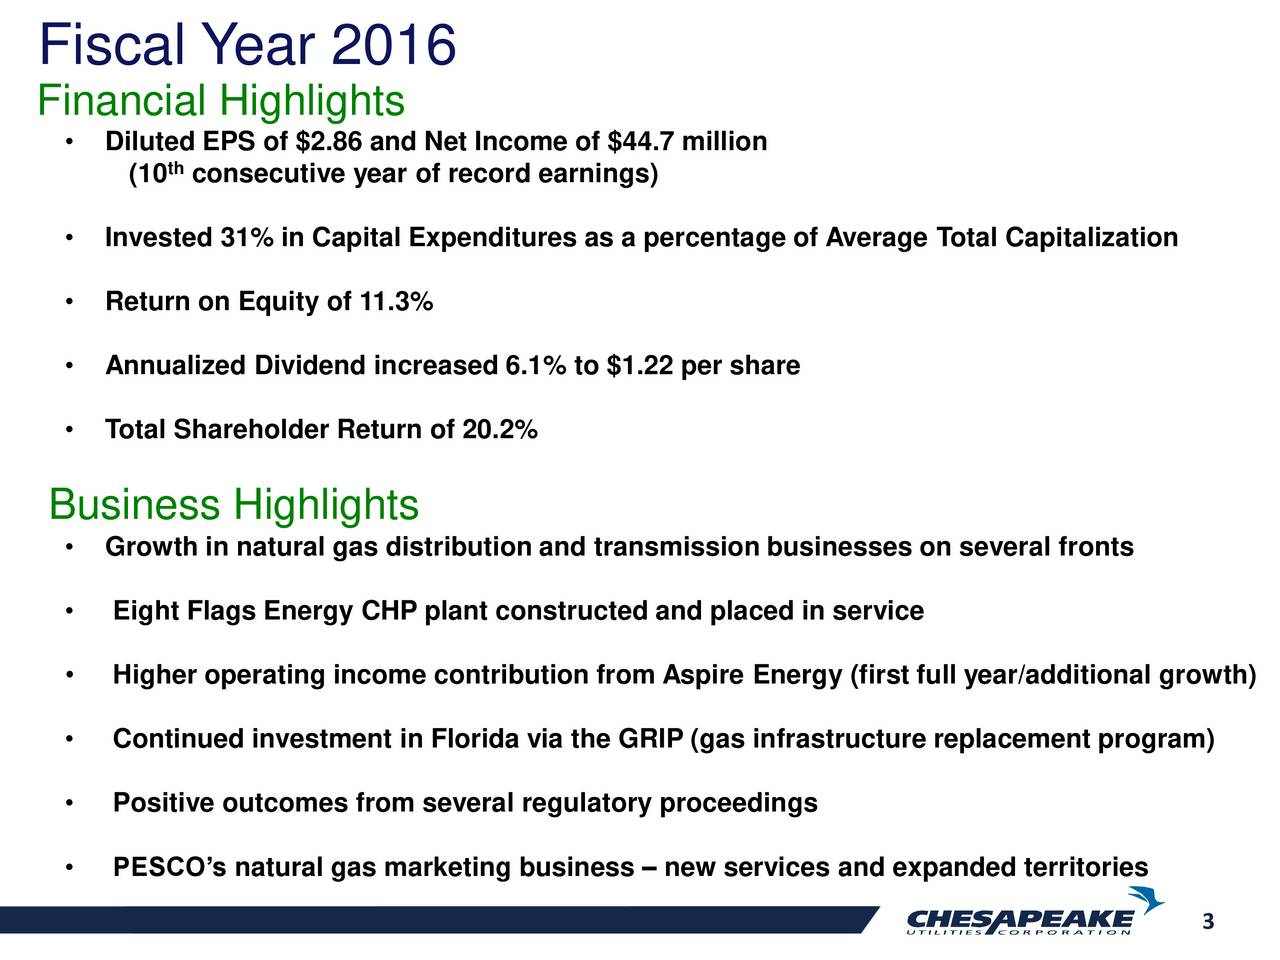 Financial Highlights Diluted EPS of $2.86 and Net Income of $44.7 million (10 consecutive year of record earnings) Invested 31% in Capital Expenditures as a percentage of Average Total Capitalization Return on Equity of 11.3% Annualized Dividend increased 6.1% to $1.22 per share Total Shareholder Return of 20.2% Business Highlights Growth in natural gas distribution and transmission businesses on several fronts Eight Flags Energy CHP plant constructed and placed in service Higher operating income contribution from Aspire Energy (first full year/additional growth) Continued investment in Florida via the GRIP (gas infrastructure replacement program) Positive outcomes from several regulatory proceedings PESCOs natural gas marketing business  new services and expanded territories 3